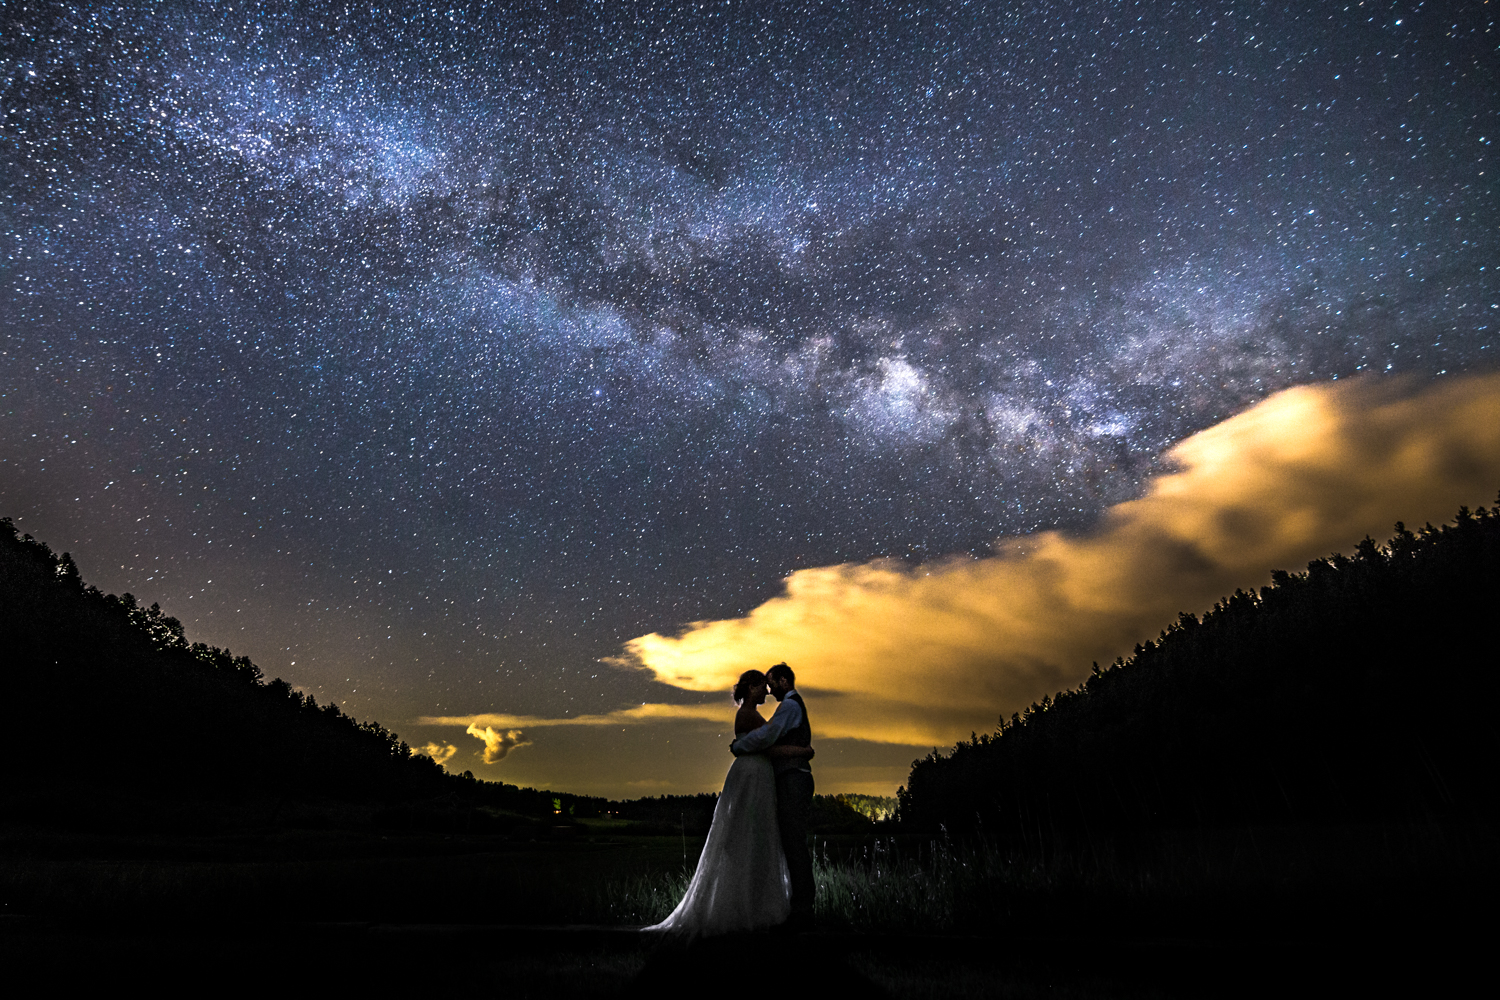 Milky way wedding pictures at Deer Creek Valley Ranch Wedding. Photographed by JMGant Photography.